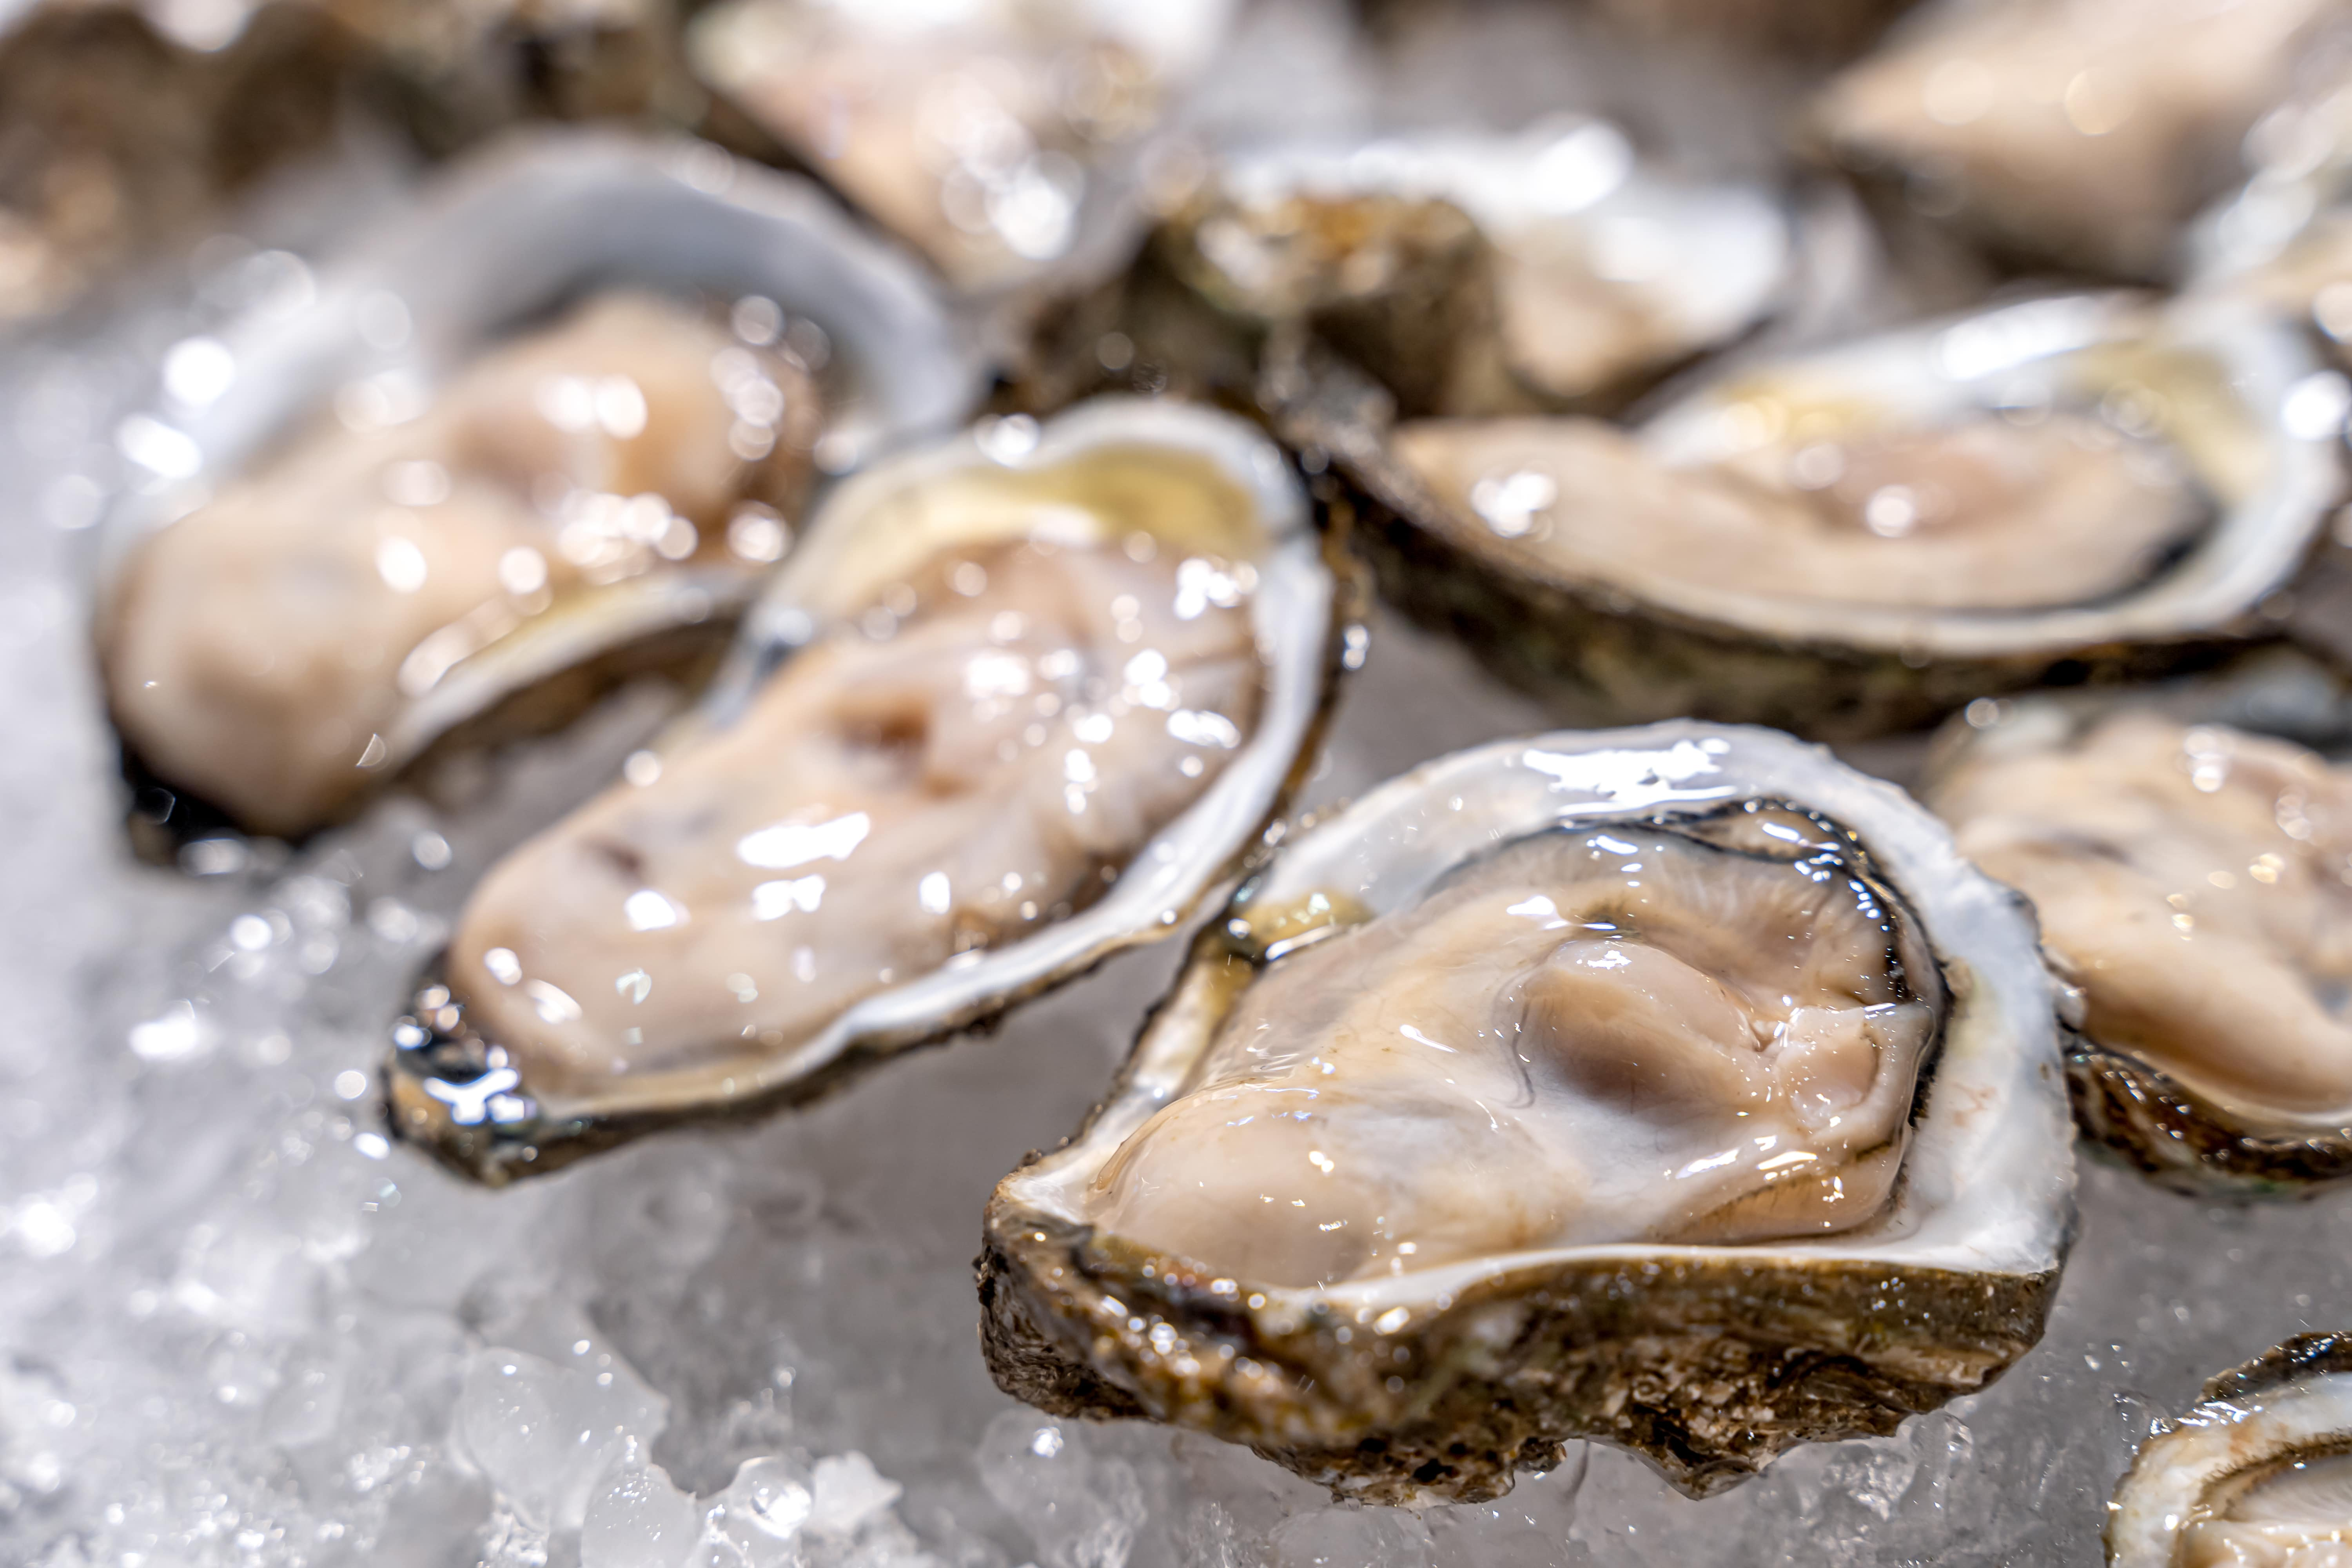 Fresh oysters in Cambuhat Oyster Farm in Bohol